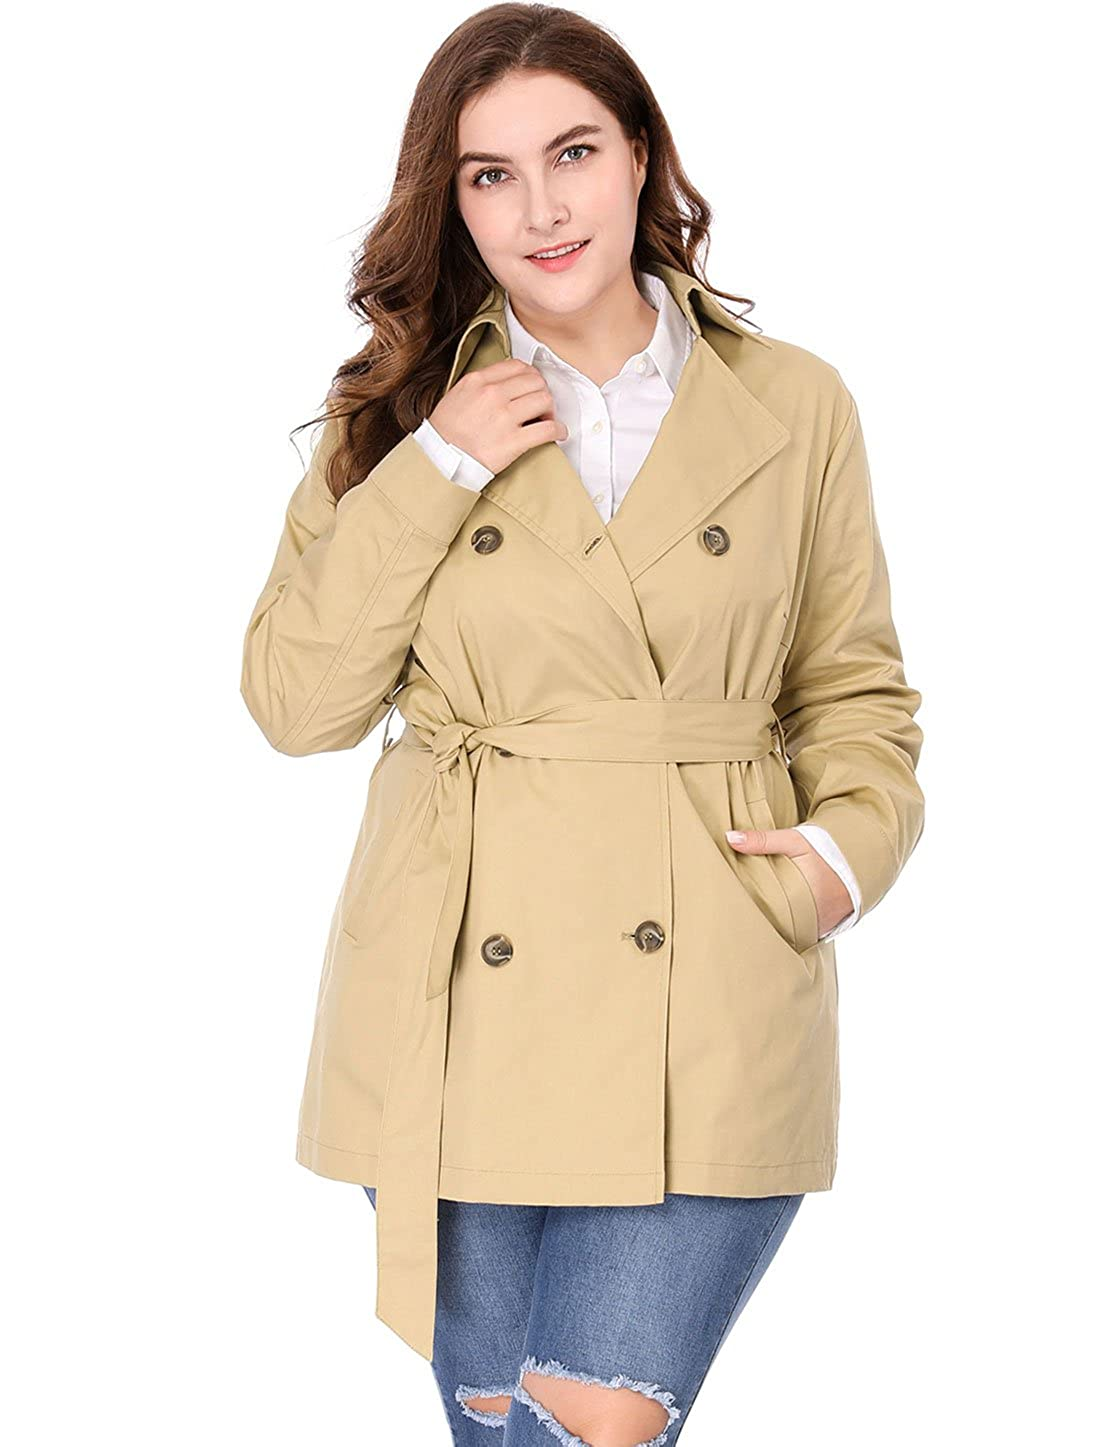 Agnes Orinda Womens Plus Size Double-Breasted Belted Trench Coat